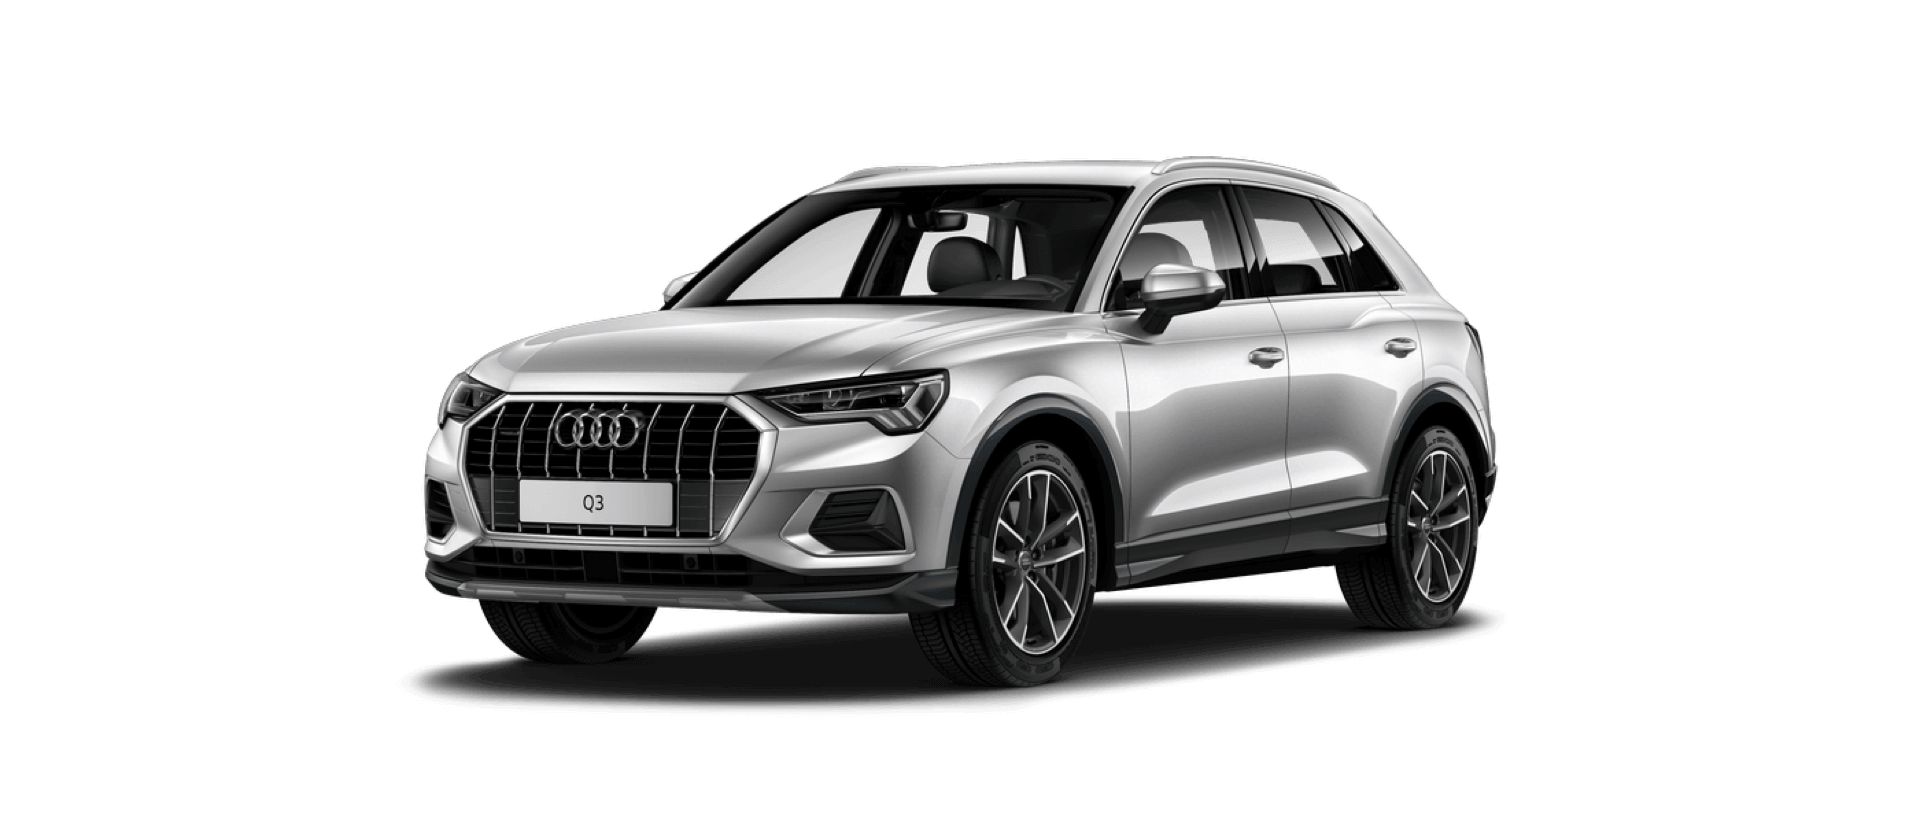 Audi Q3 - NTT Audi - New, Used & Demo Cars for Sale in South Africa